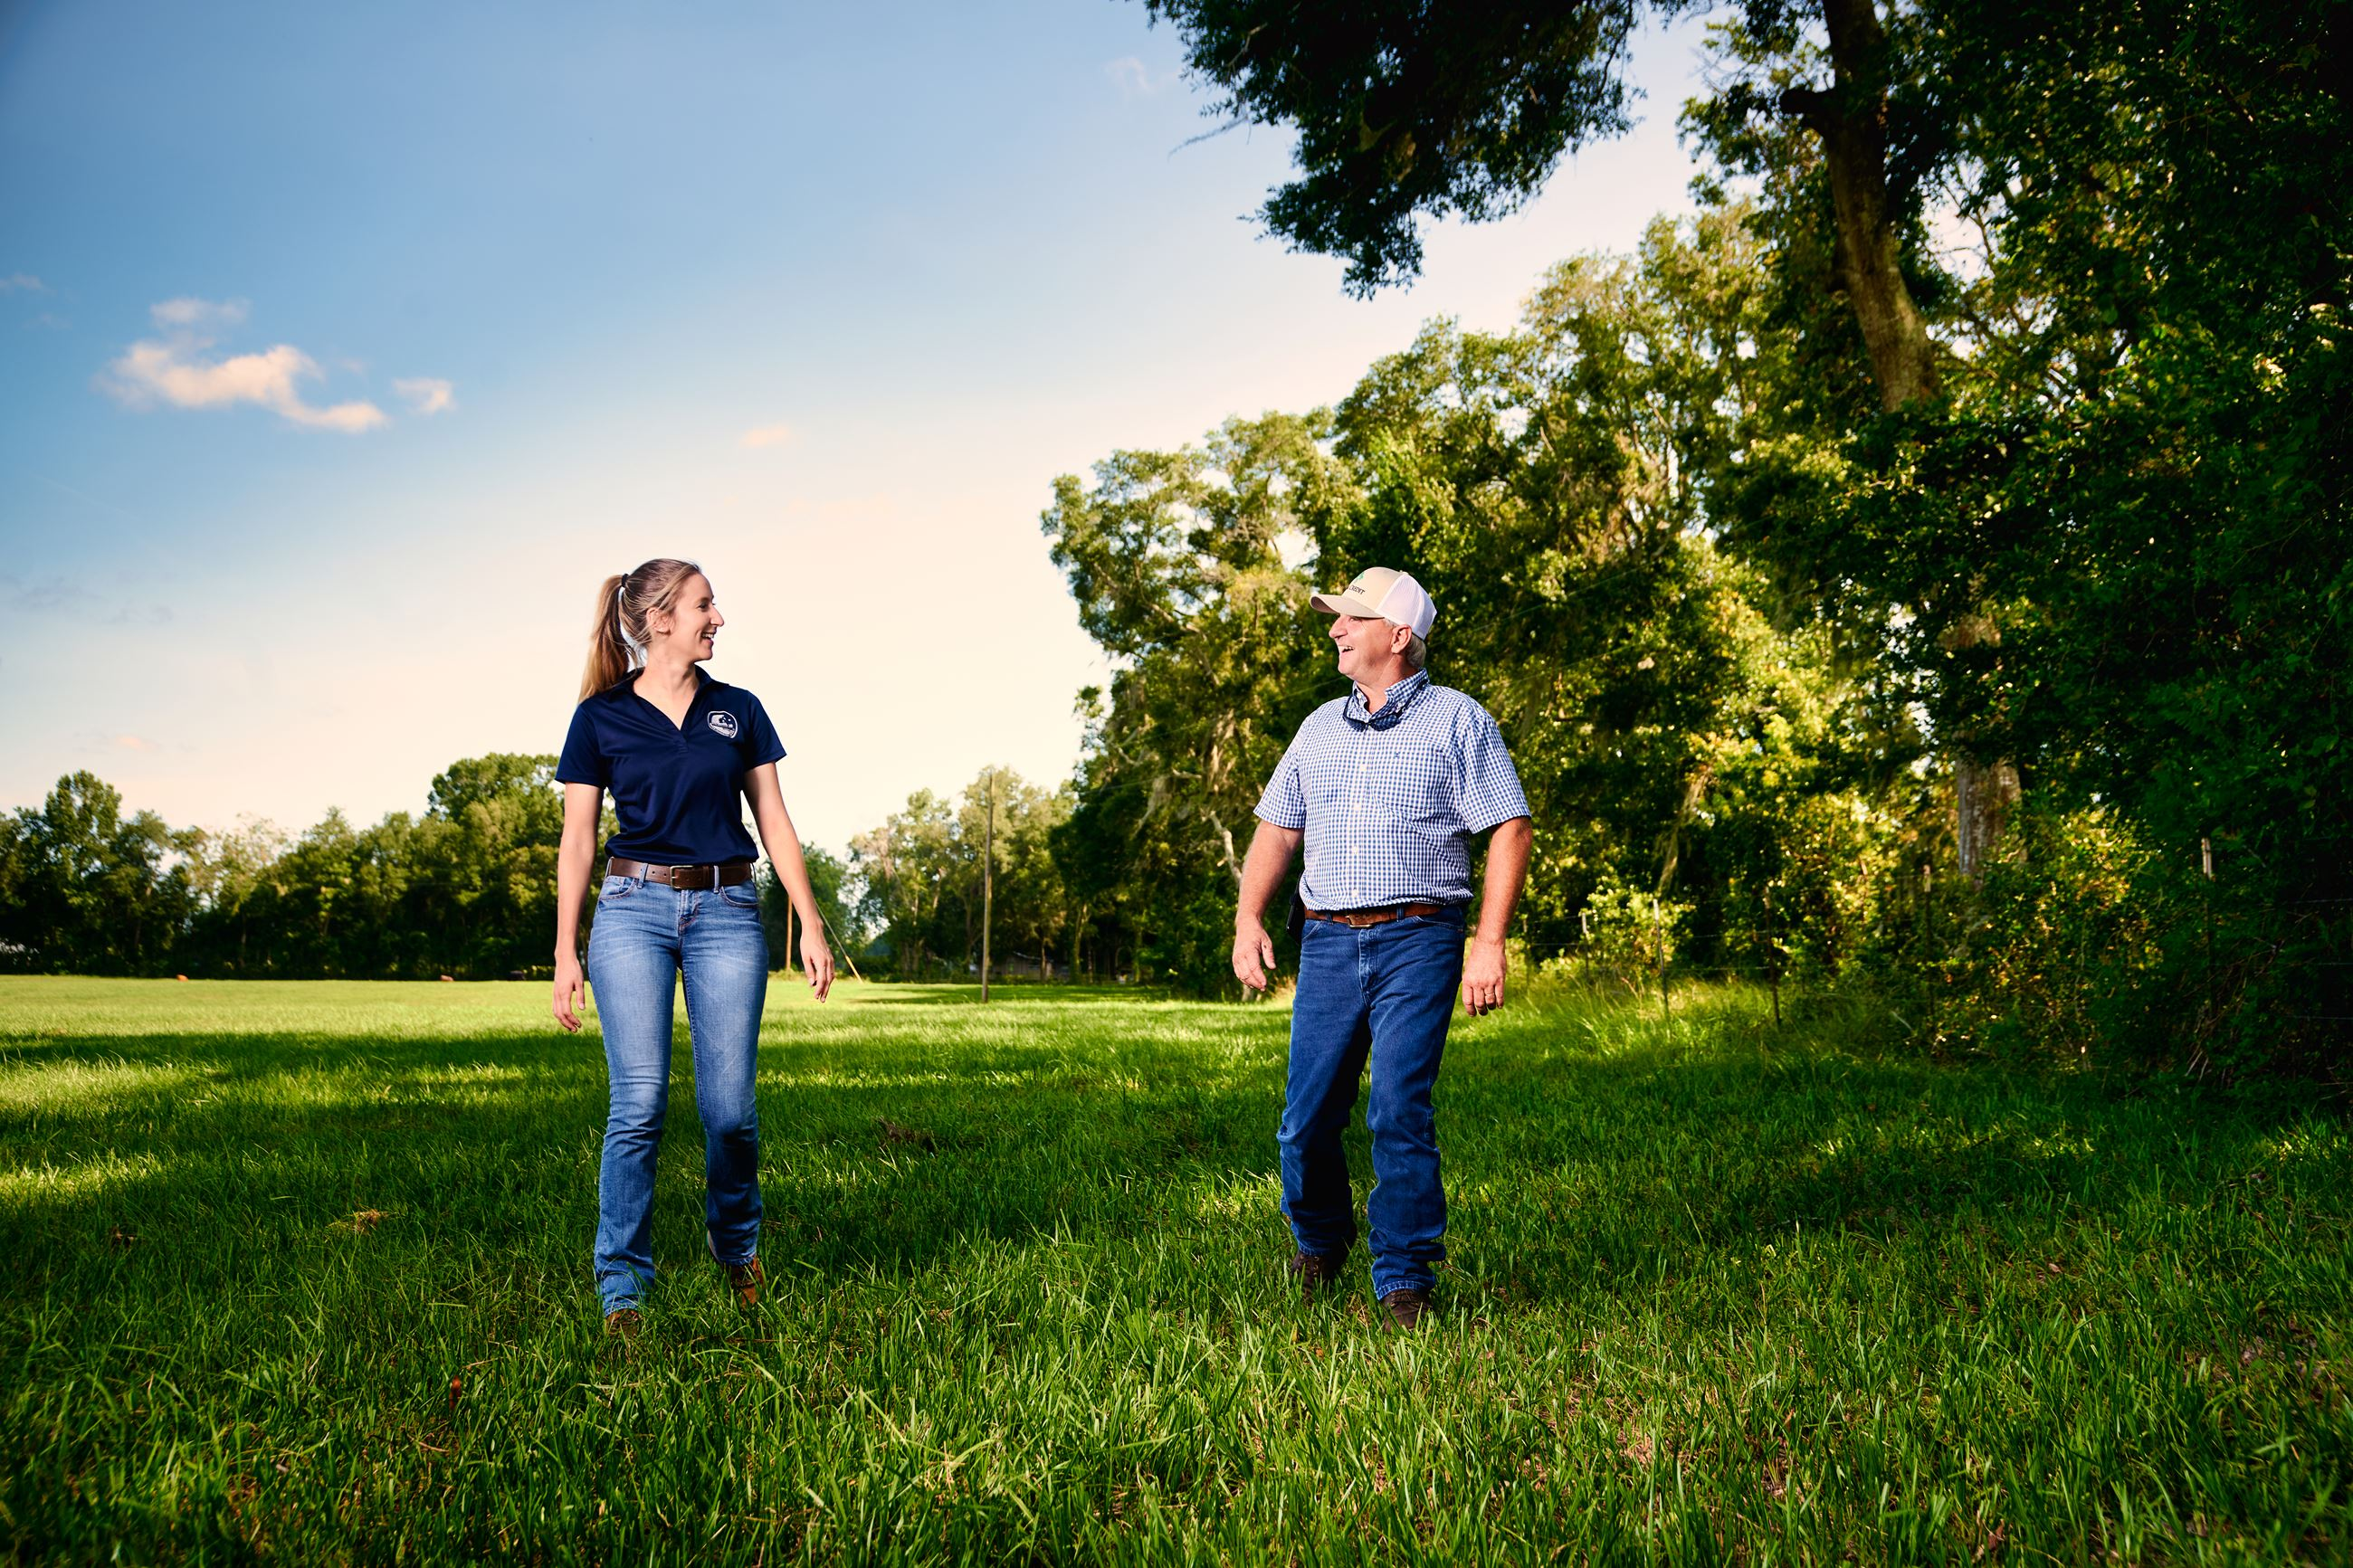 Two people walking in a pasture lined with trees.